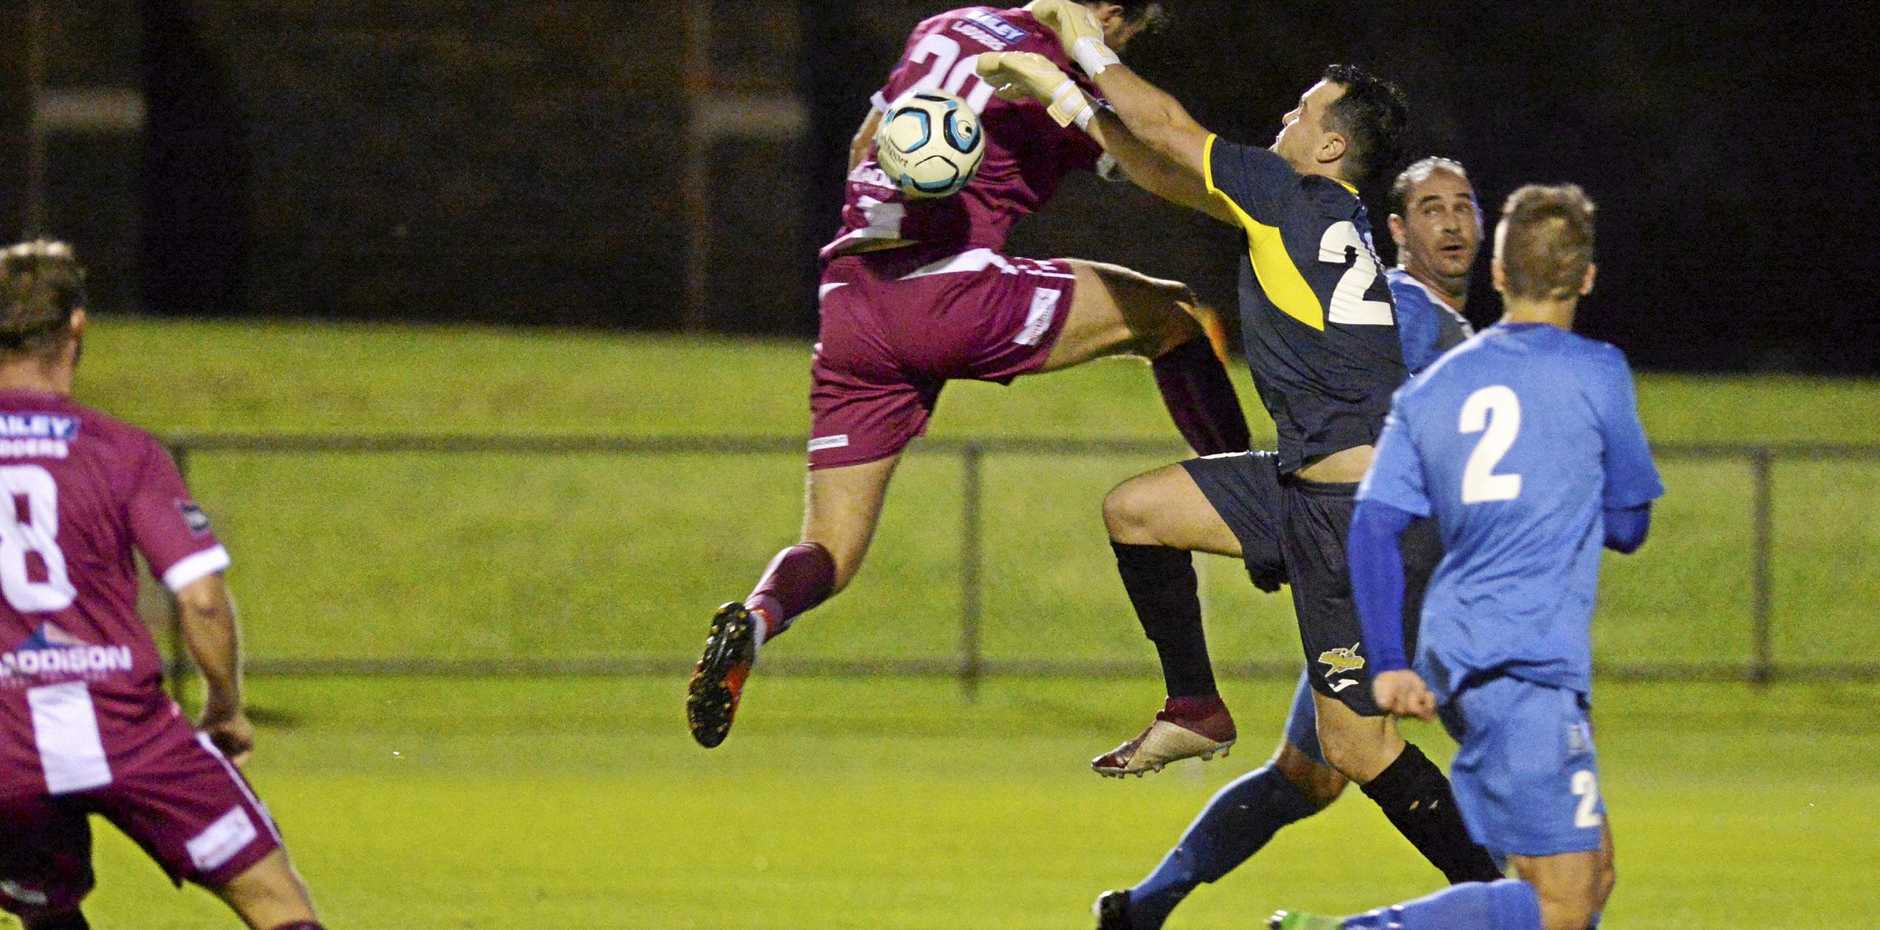 SAVE: Keeper Jace Hudson clears the ball away during the South West Queensland Thunder's FFA Cup clash with Logan Lightning.